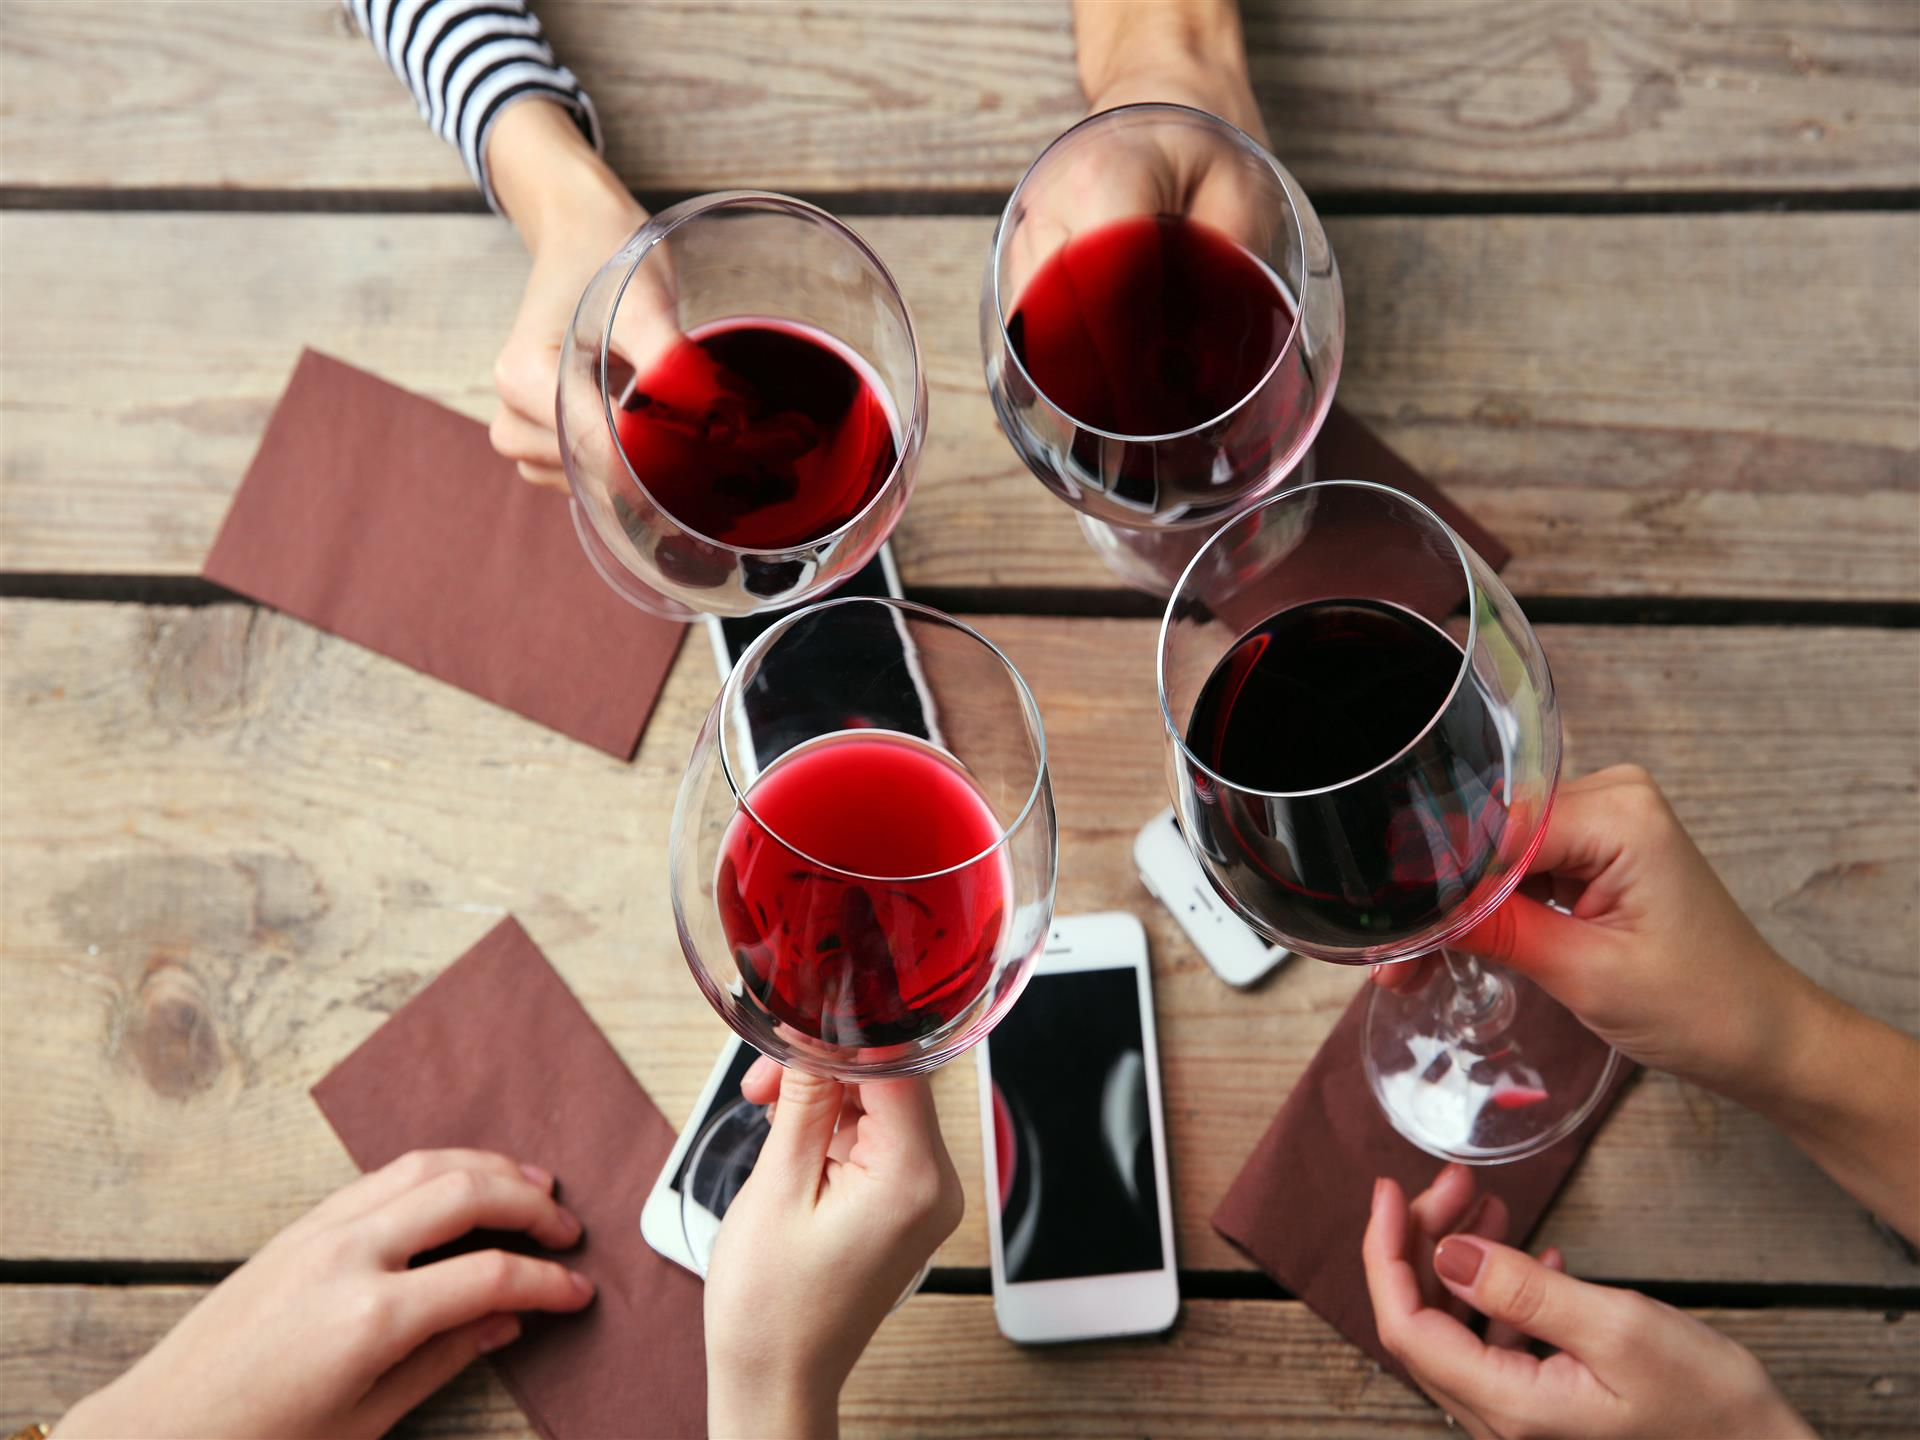 Glasses of red wine being held up over a wood table with napkins and a cell phone